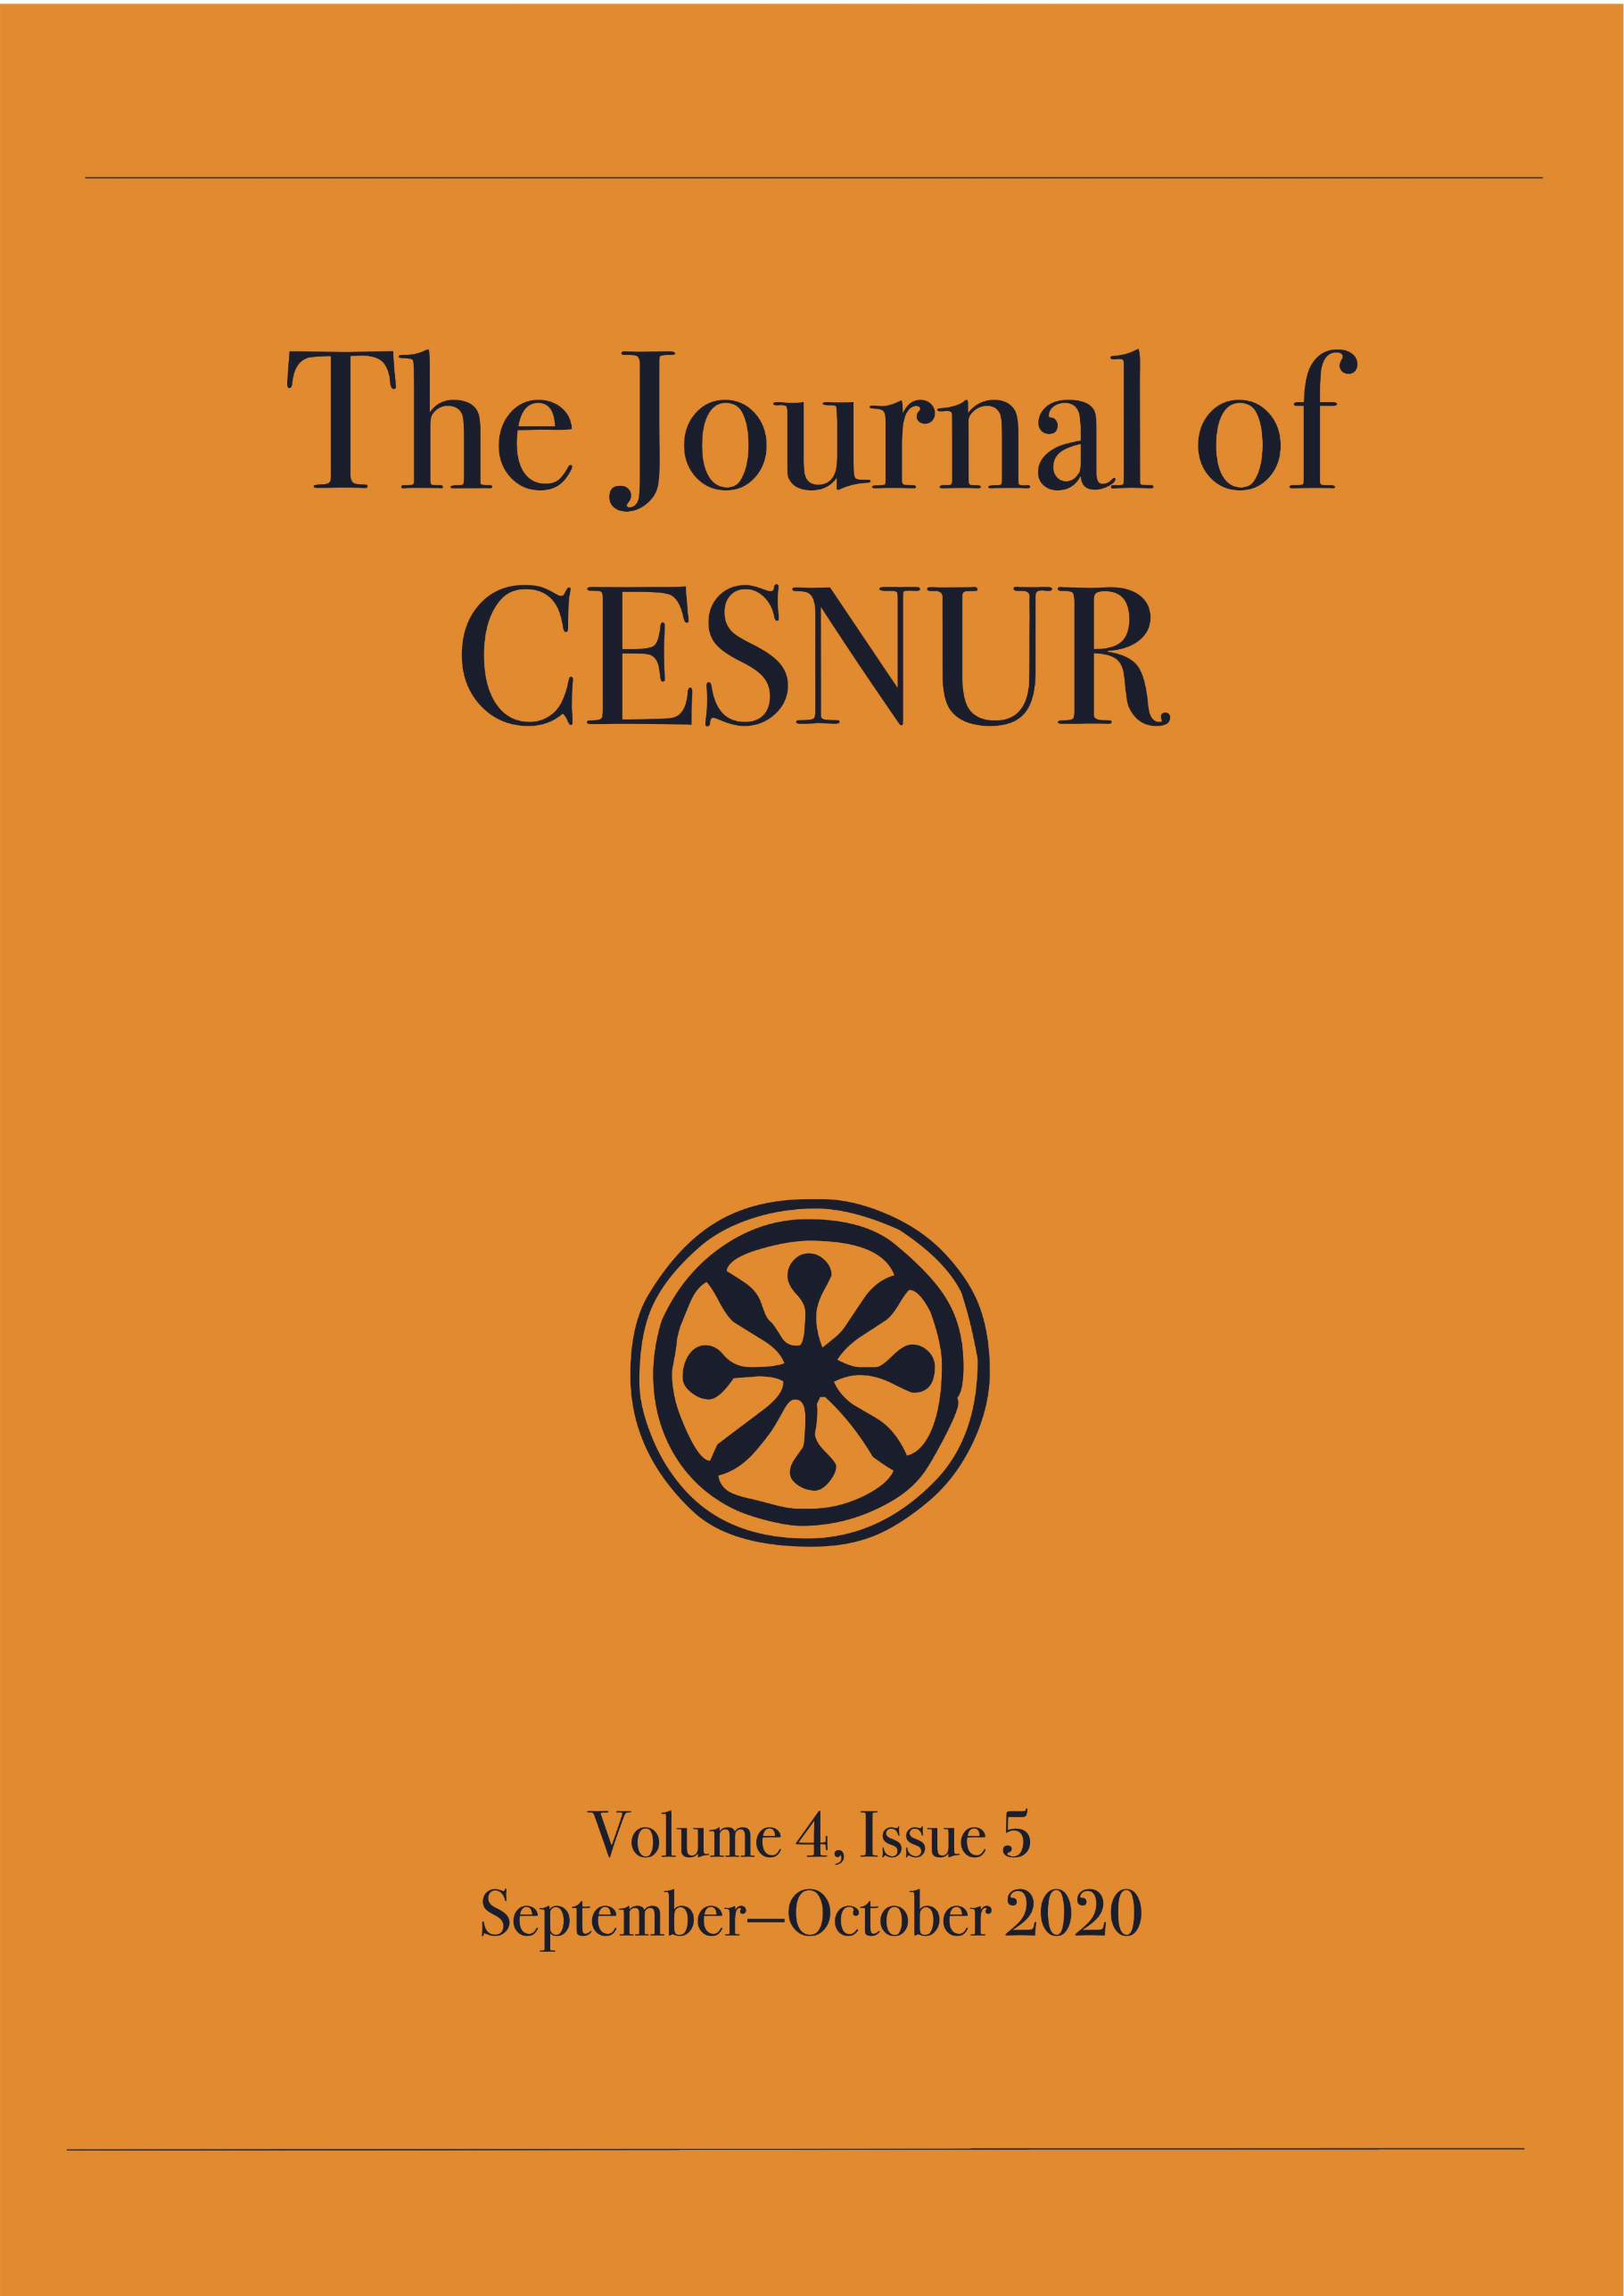 The Journal of Cesnur Volume 4 Issue 5 cover